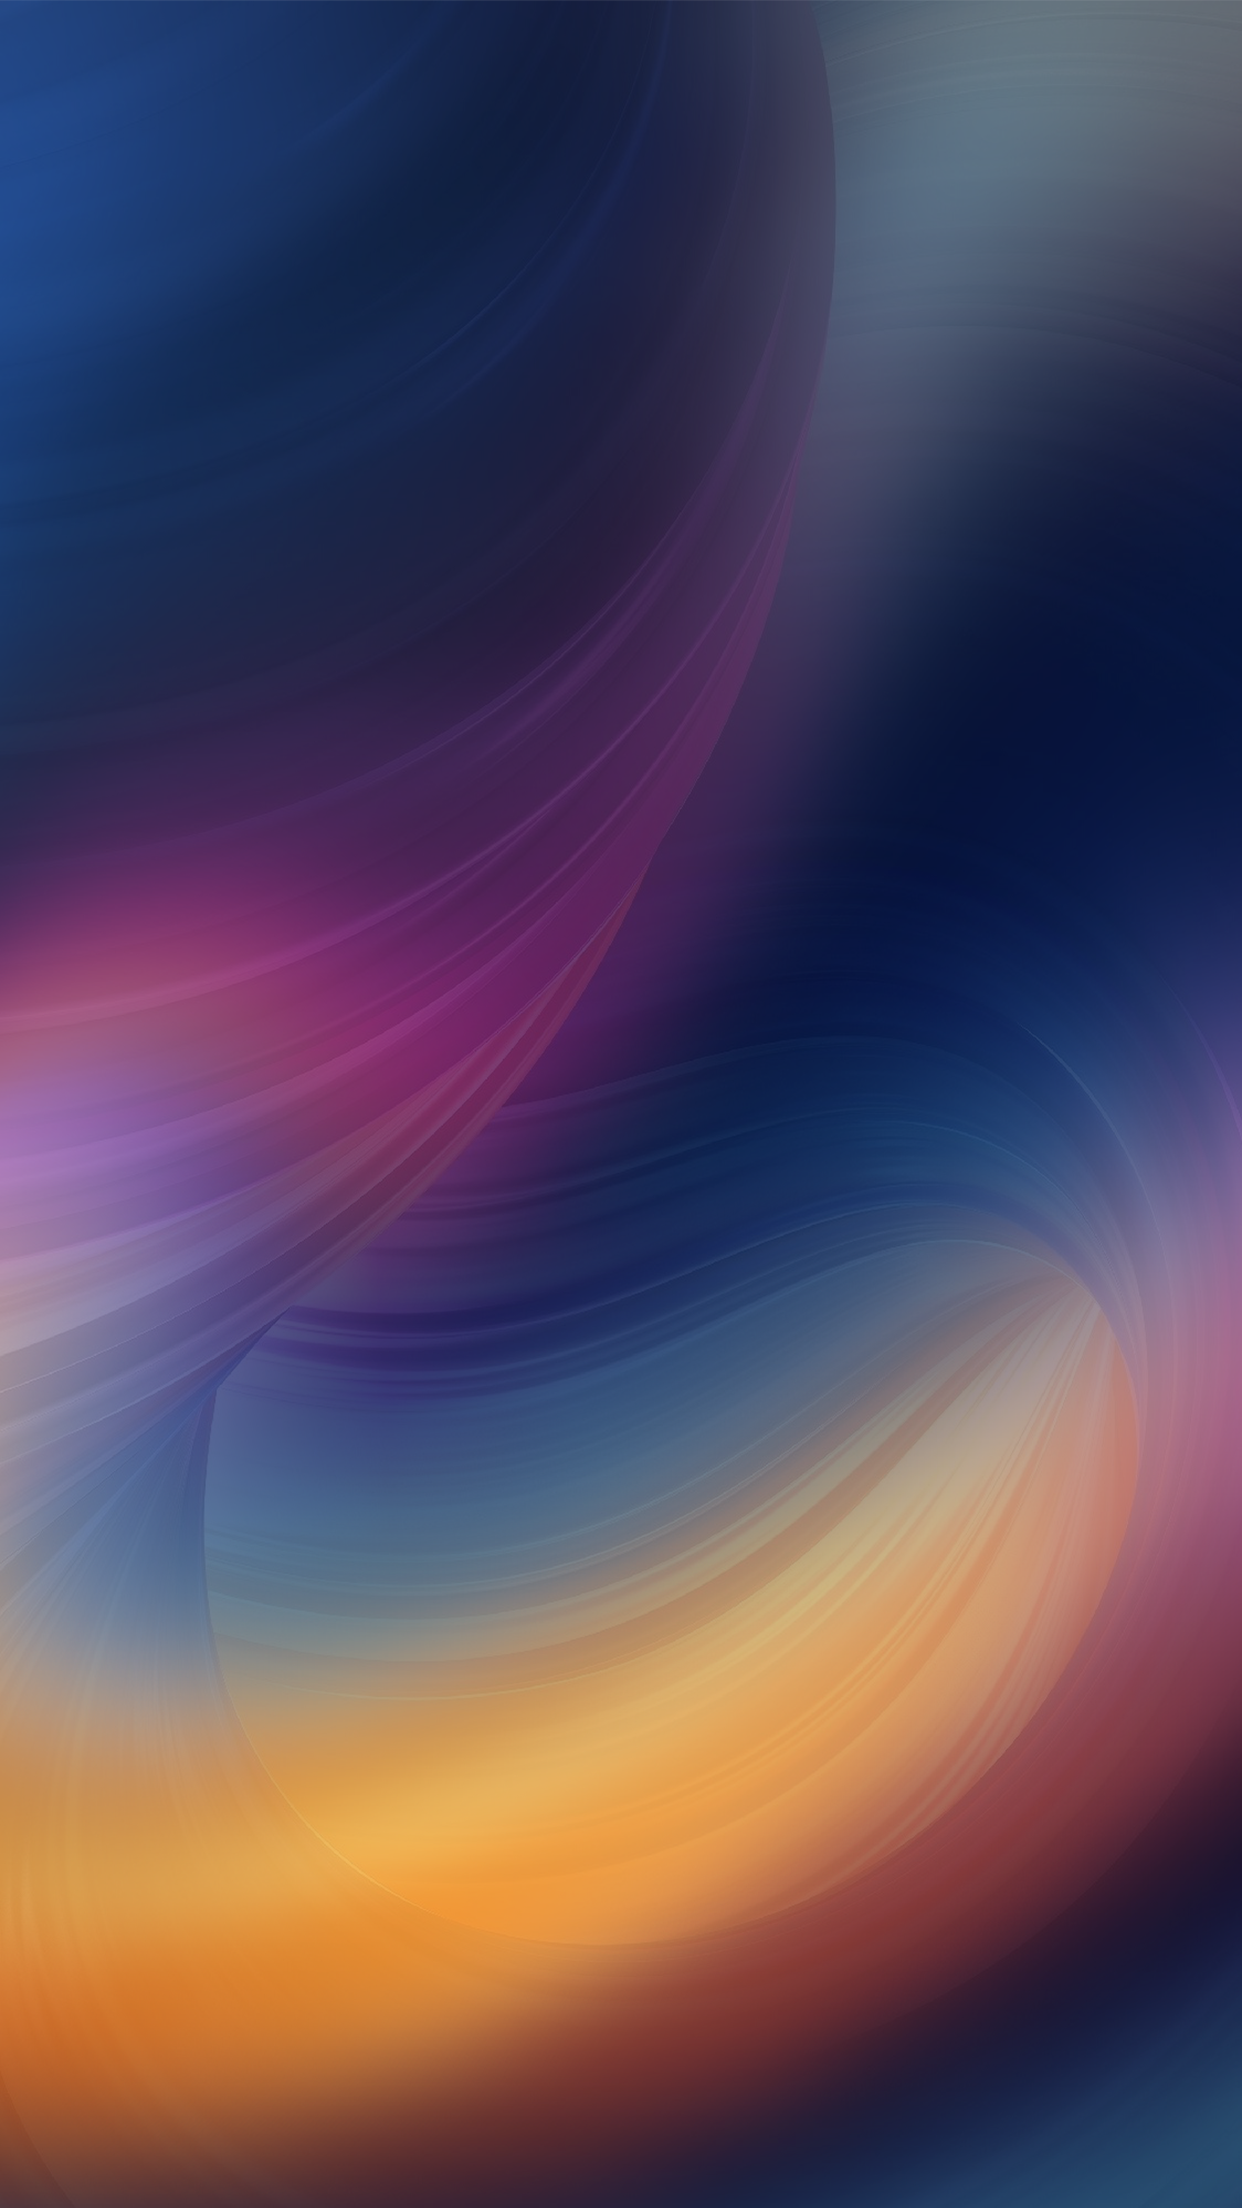 Abstract Shapes Iphone Wallpapers Top Free Abstract Shapes